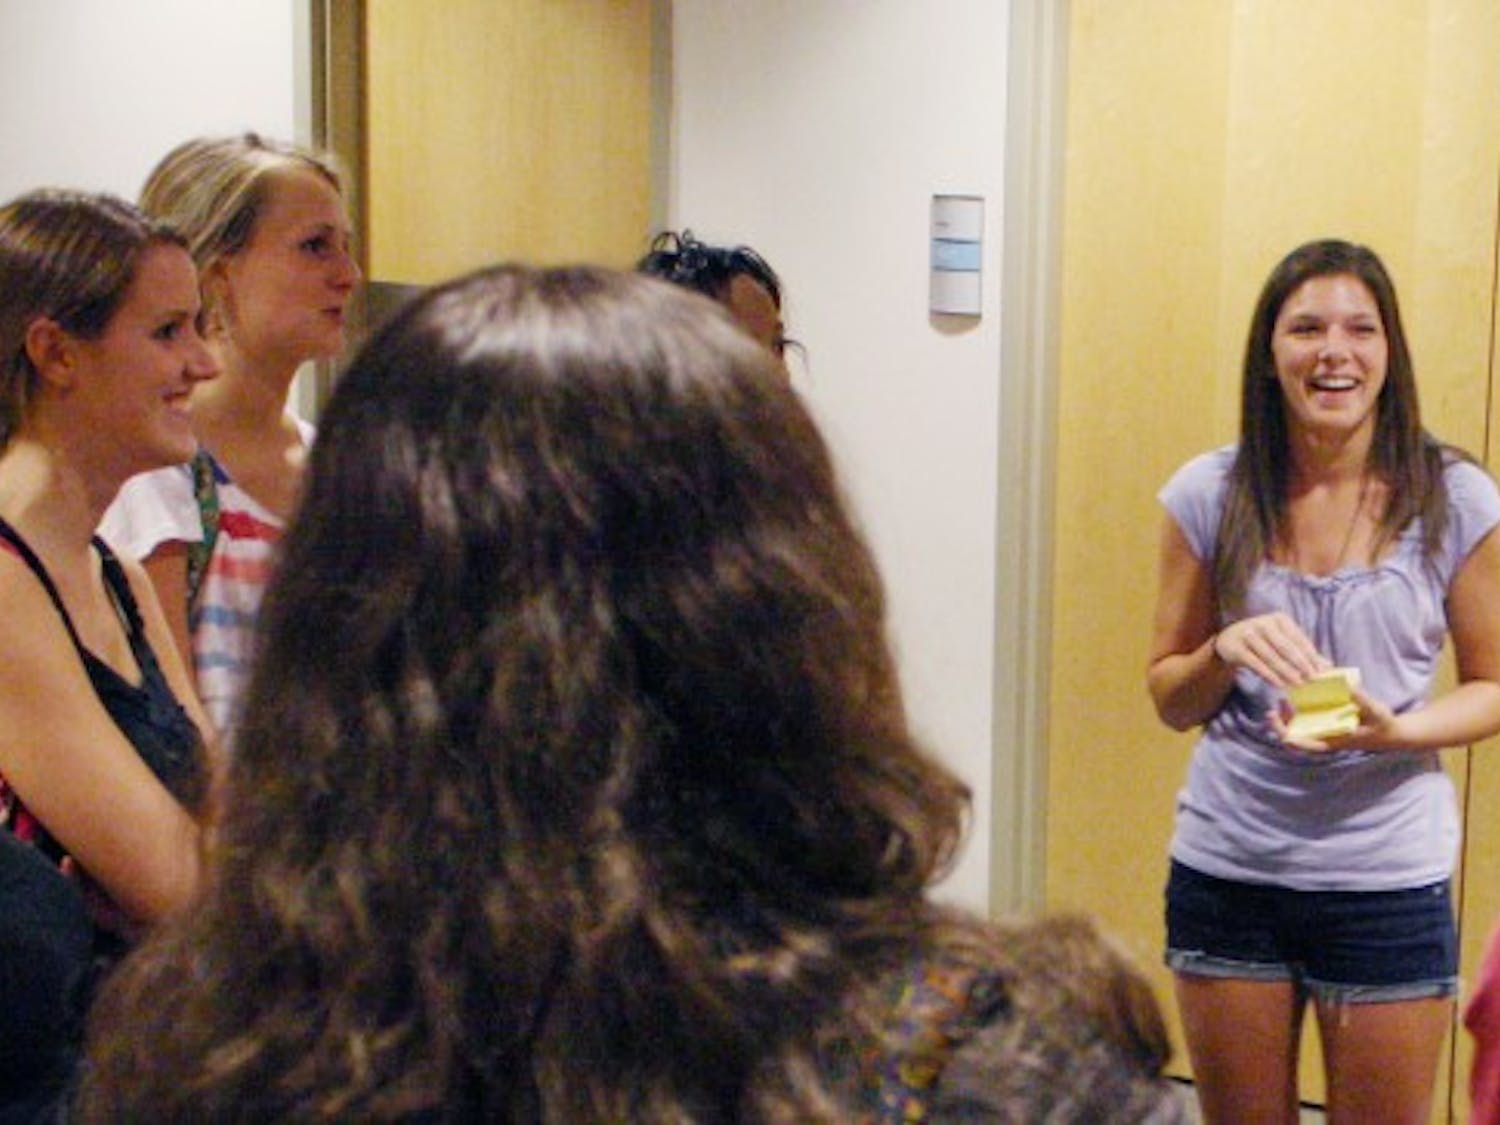 Brittany Greene, a senior Business Administration major, leads an icebreaker with a group of students. Greene is the treasurer of Carolina First, an organization that welcomes first generation college students at UNC. The executive board expected about 100 students to show up to the program.